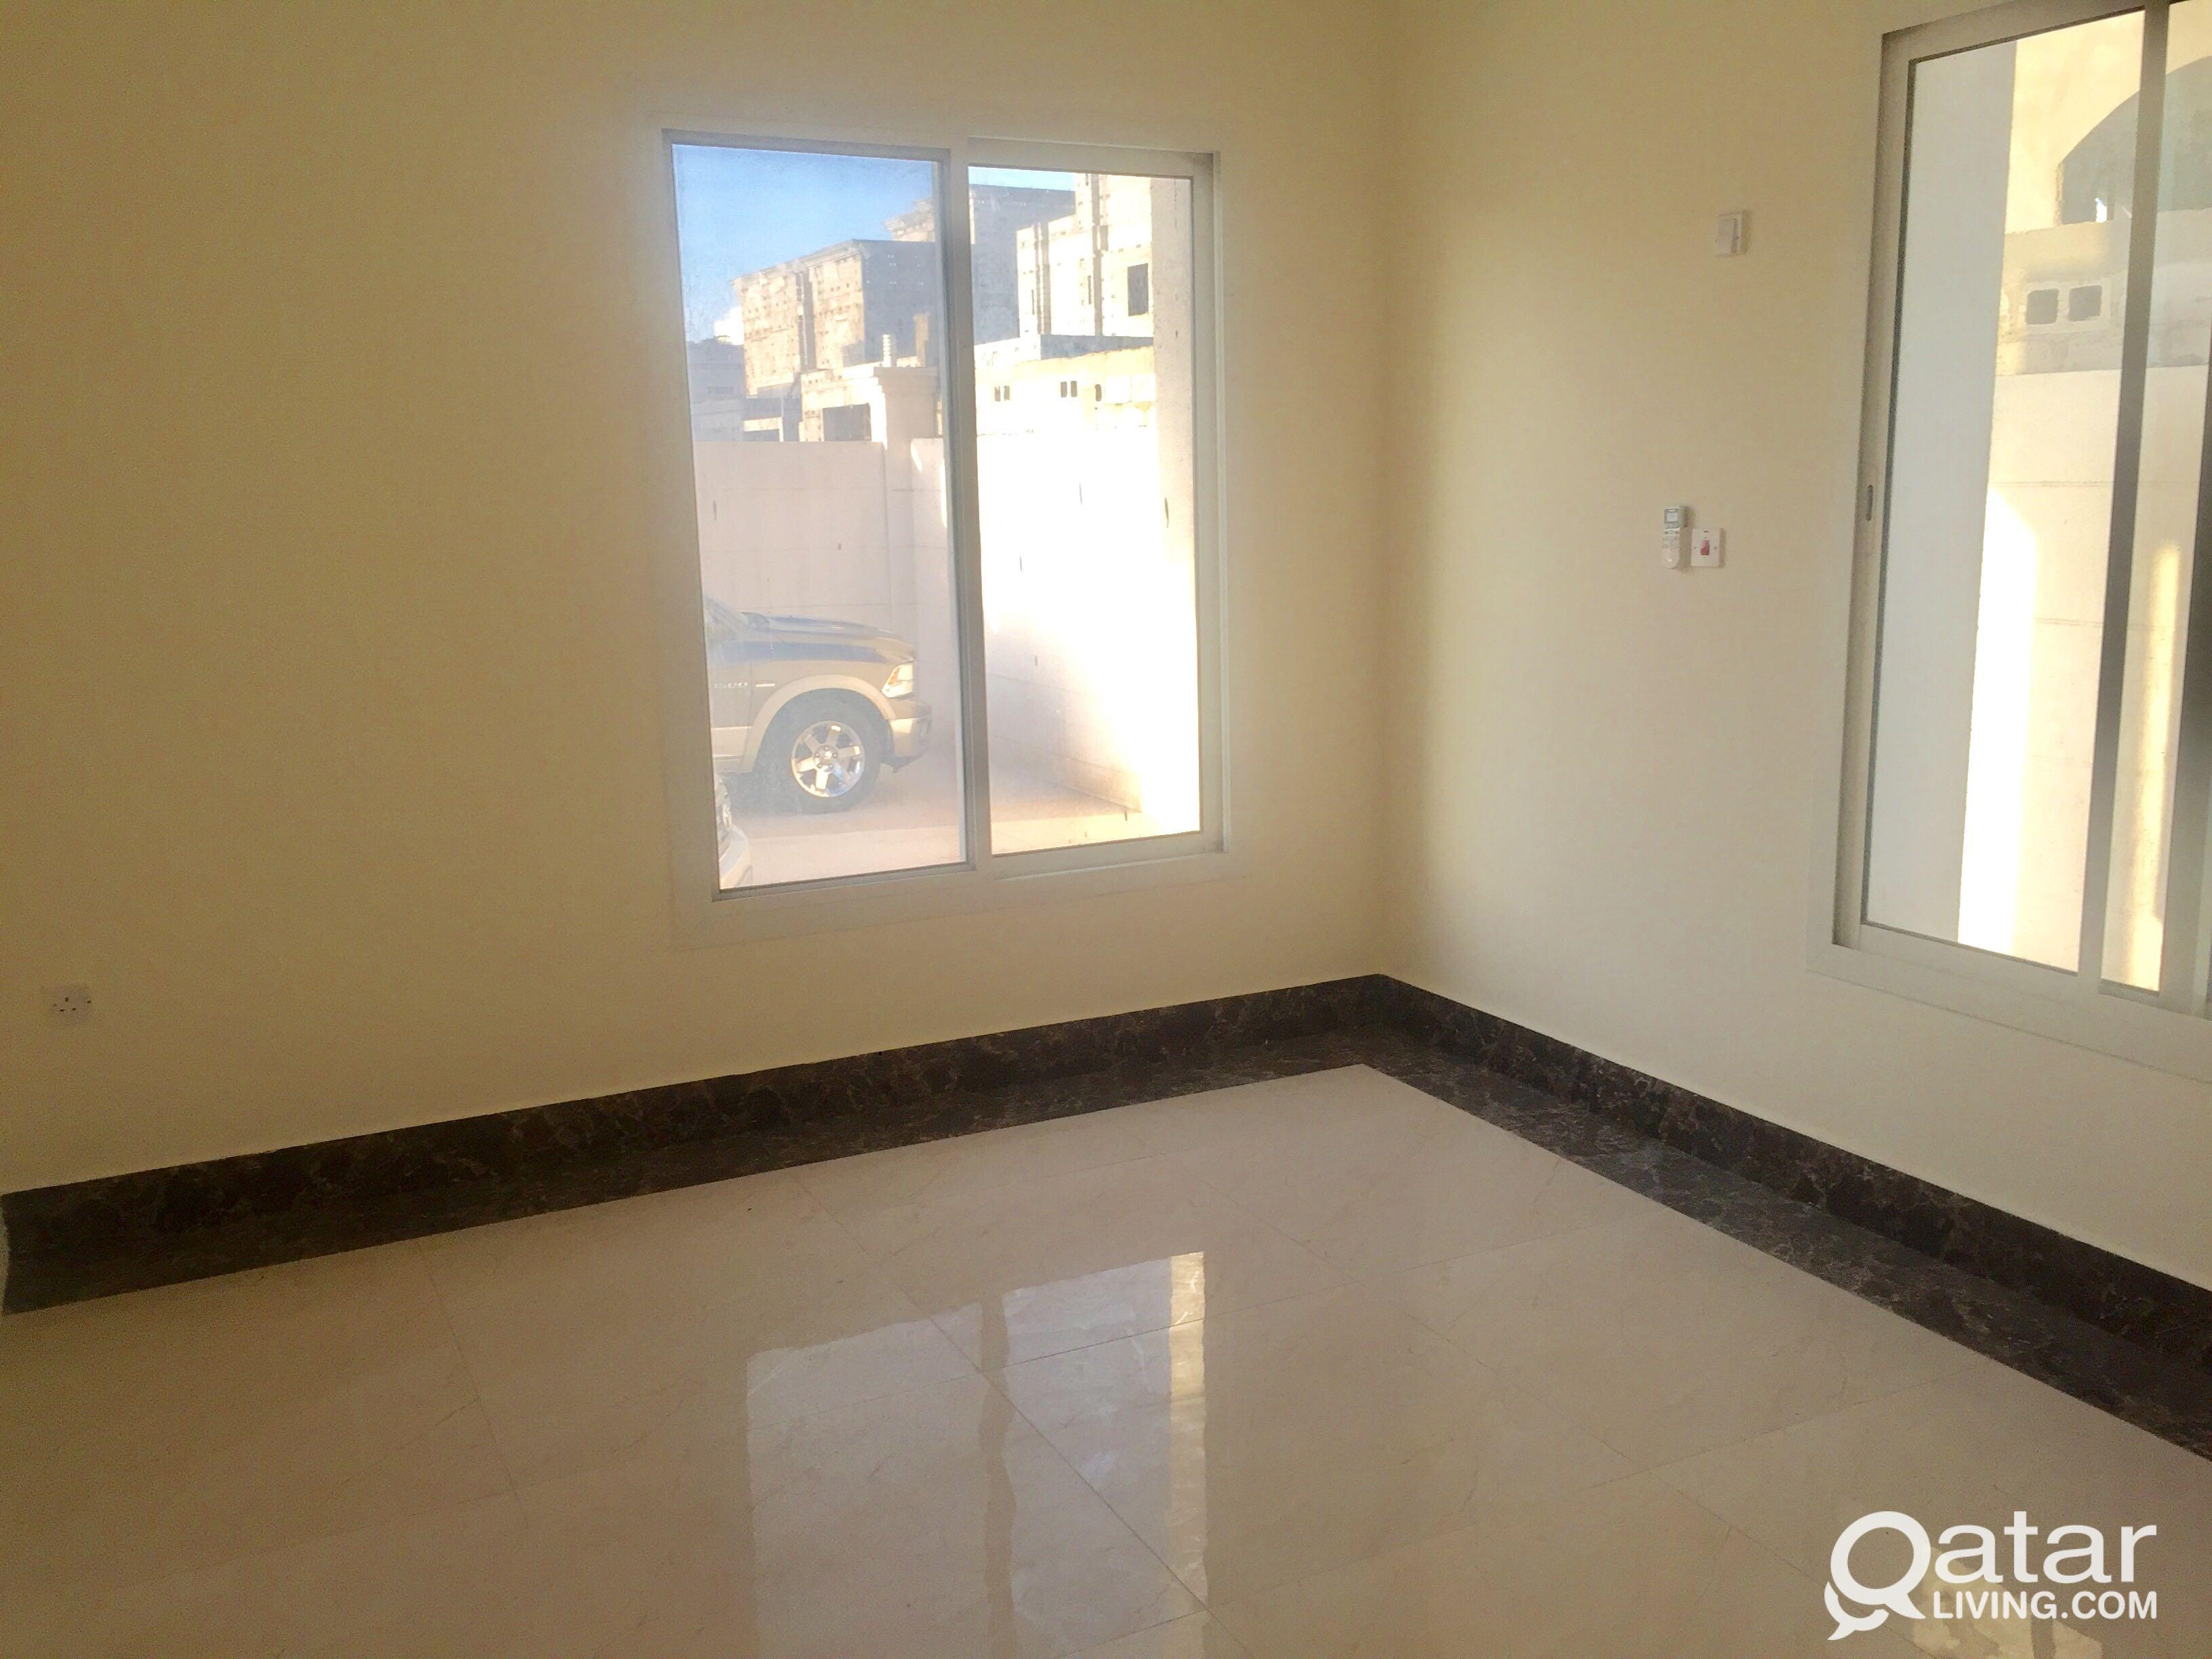 Family Rooms For Rent At Ain Khaled Tumama Hilal Qatar Living